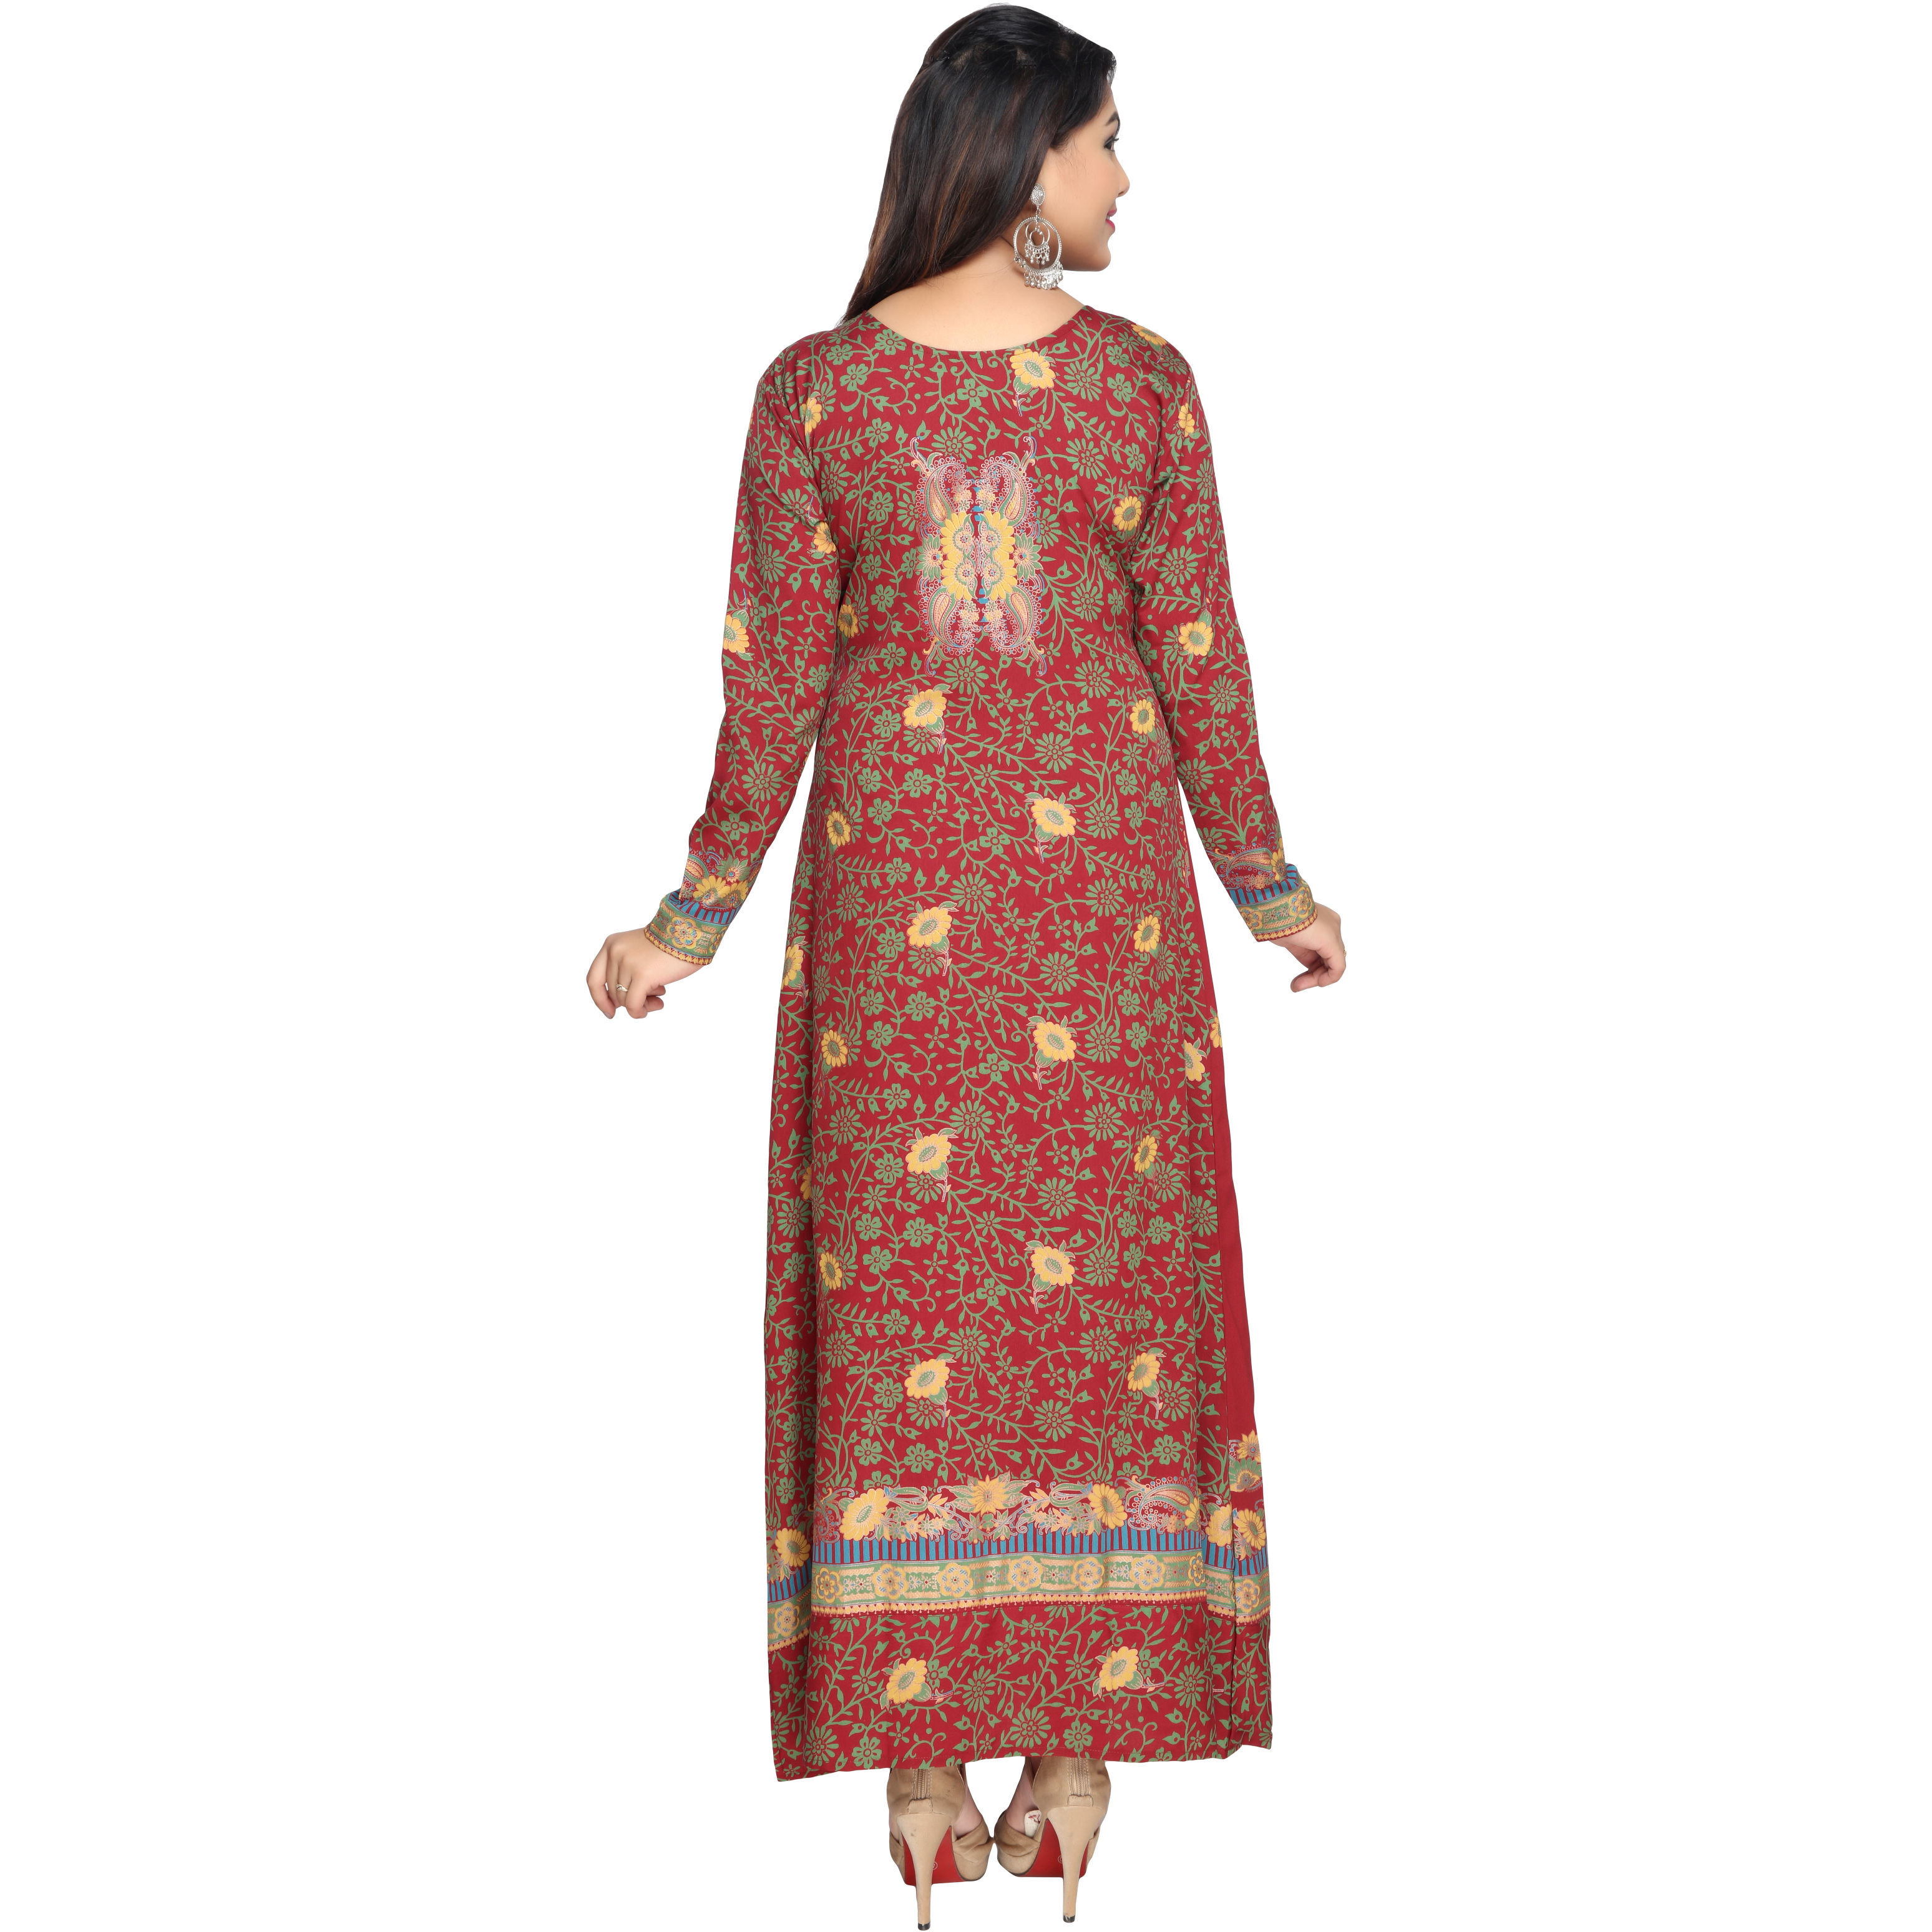 TrendyFashionMall Gold Print Kaftans Maxi Dresses with design in Front and Back (Color:TFMKFT01044-REDMULTI, Size:52 - 5X-LARGE)